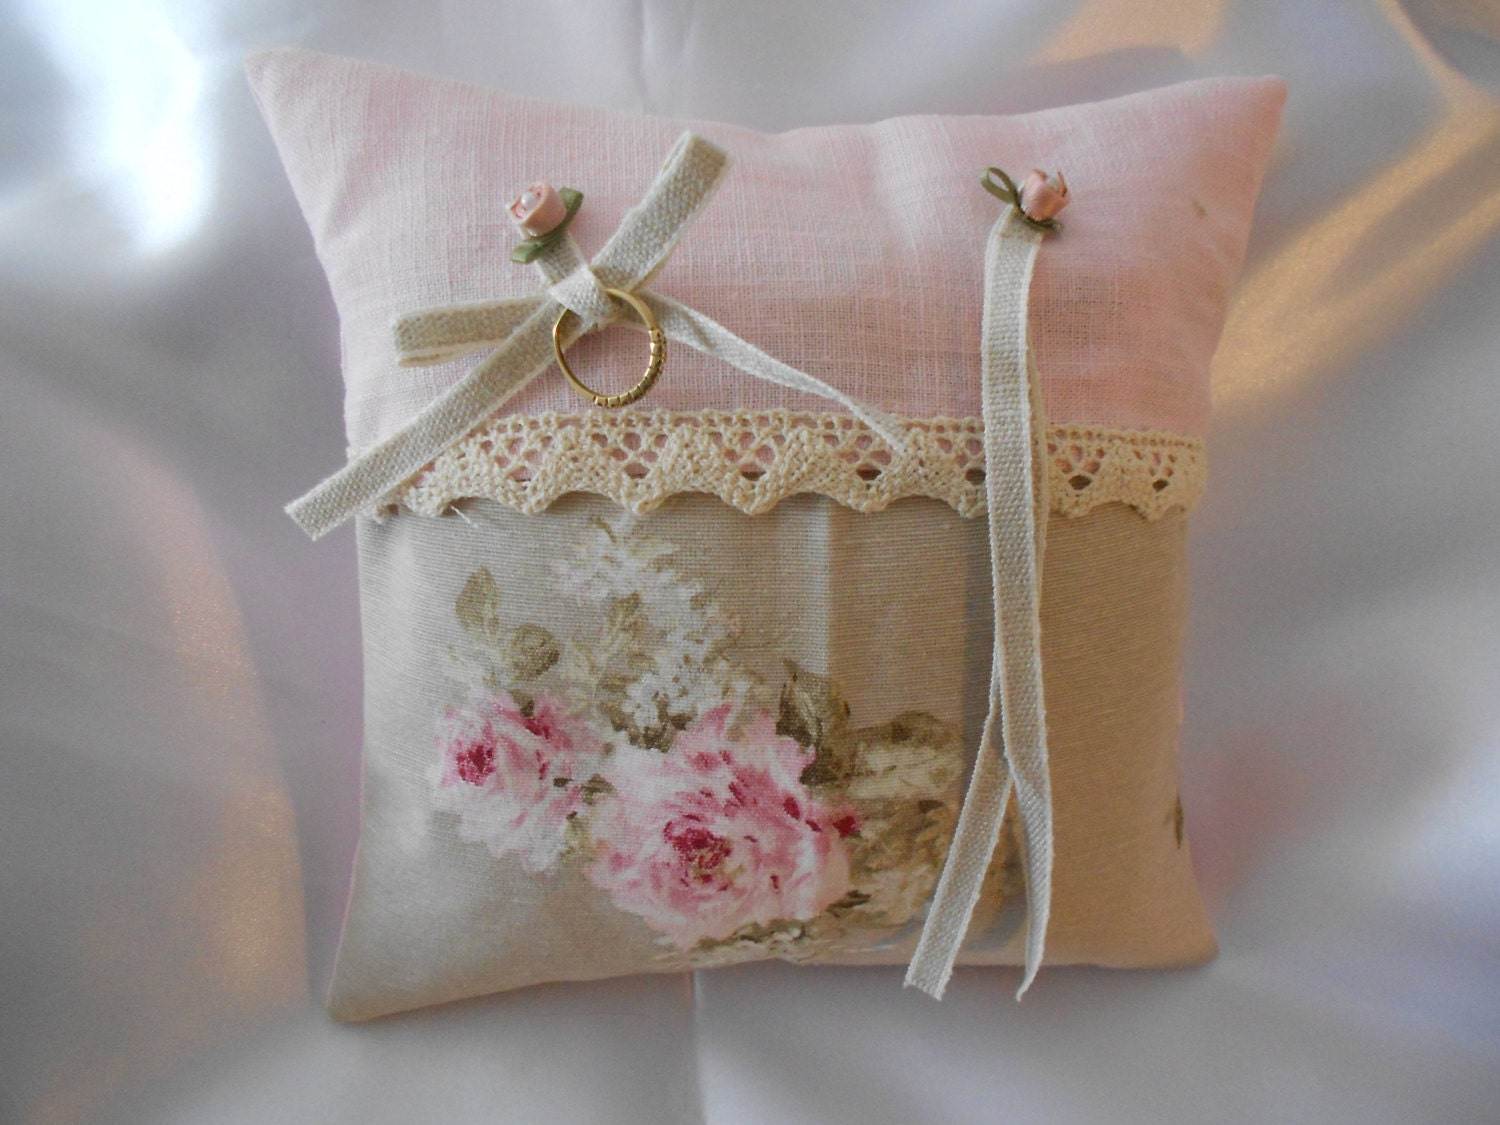 Coussin d 39 alliances esprit shabby chic tons beige rose for Decoration des coussins